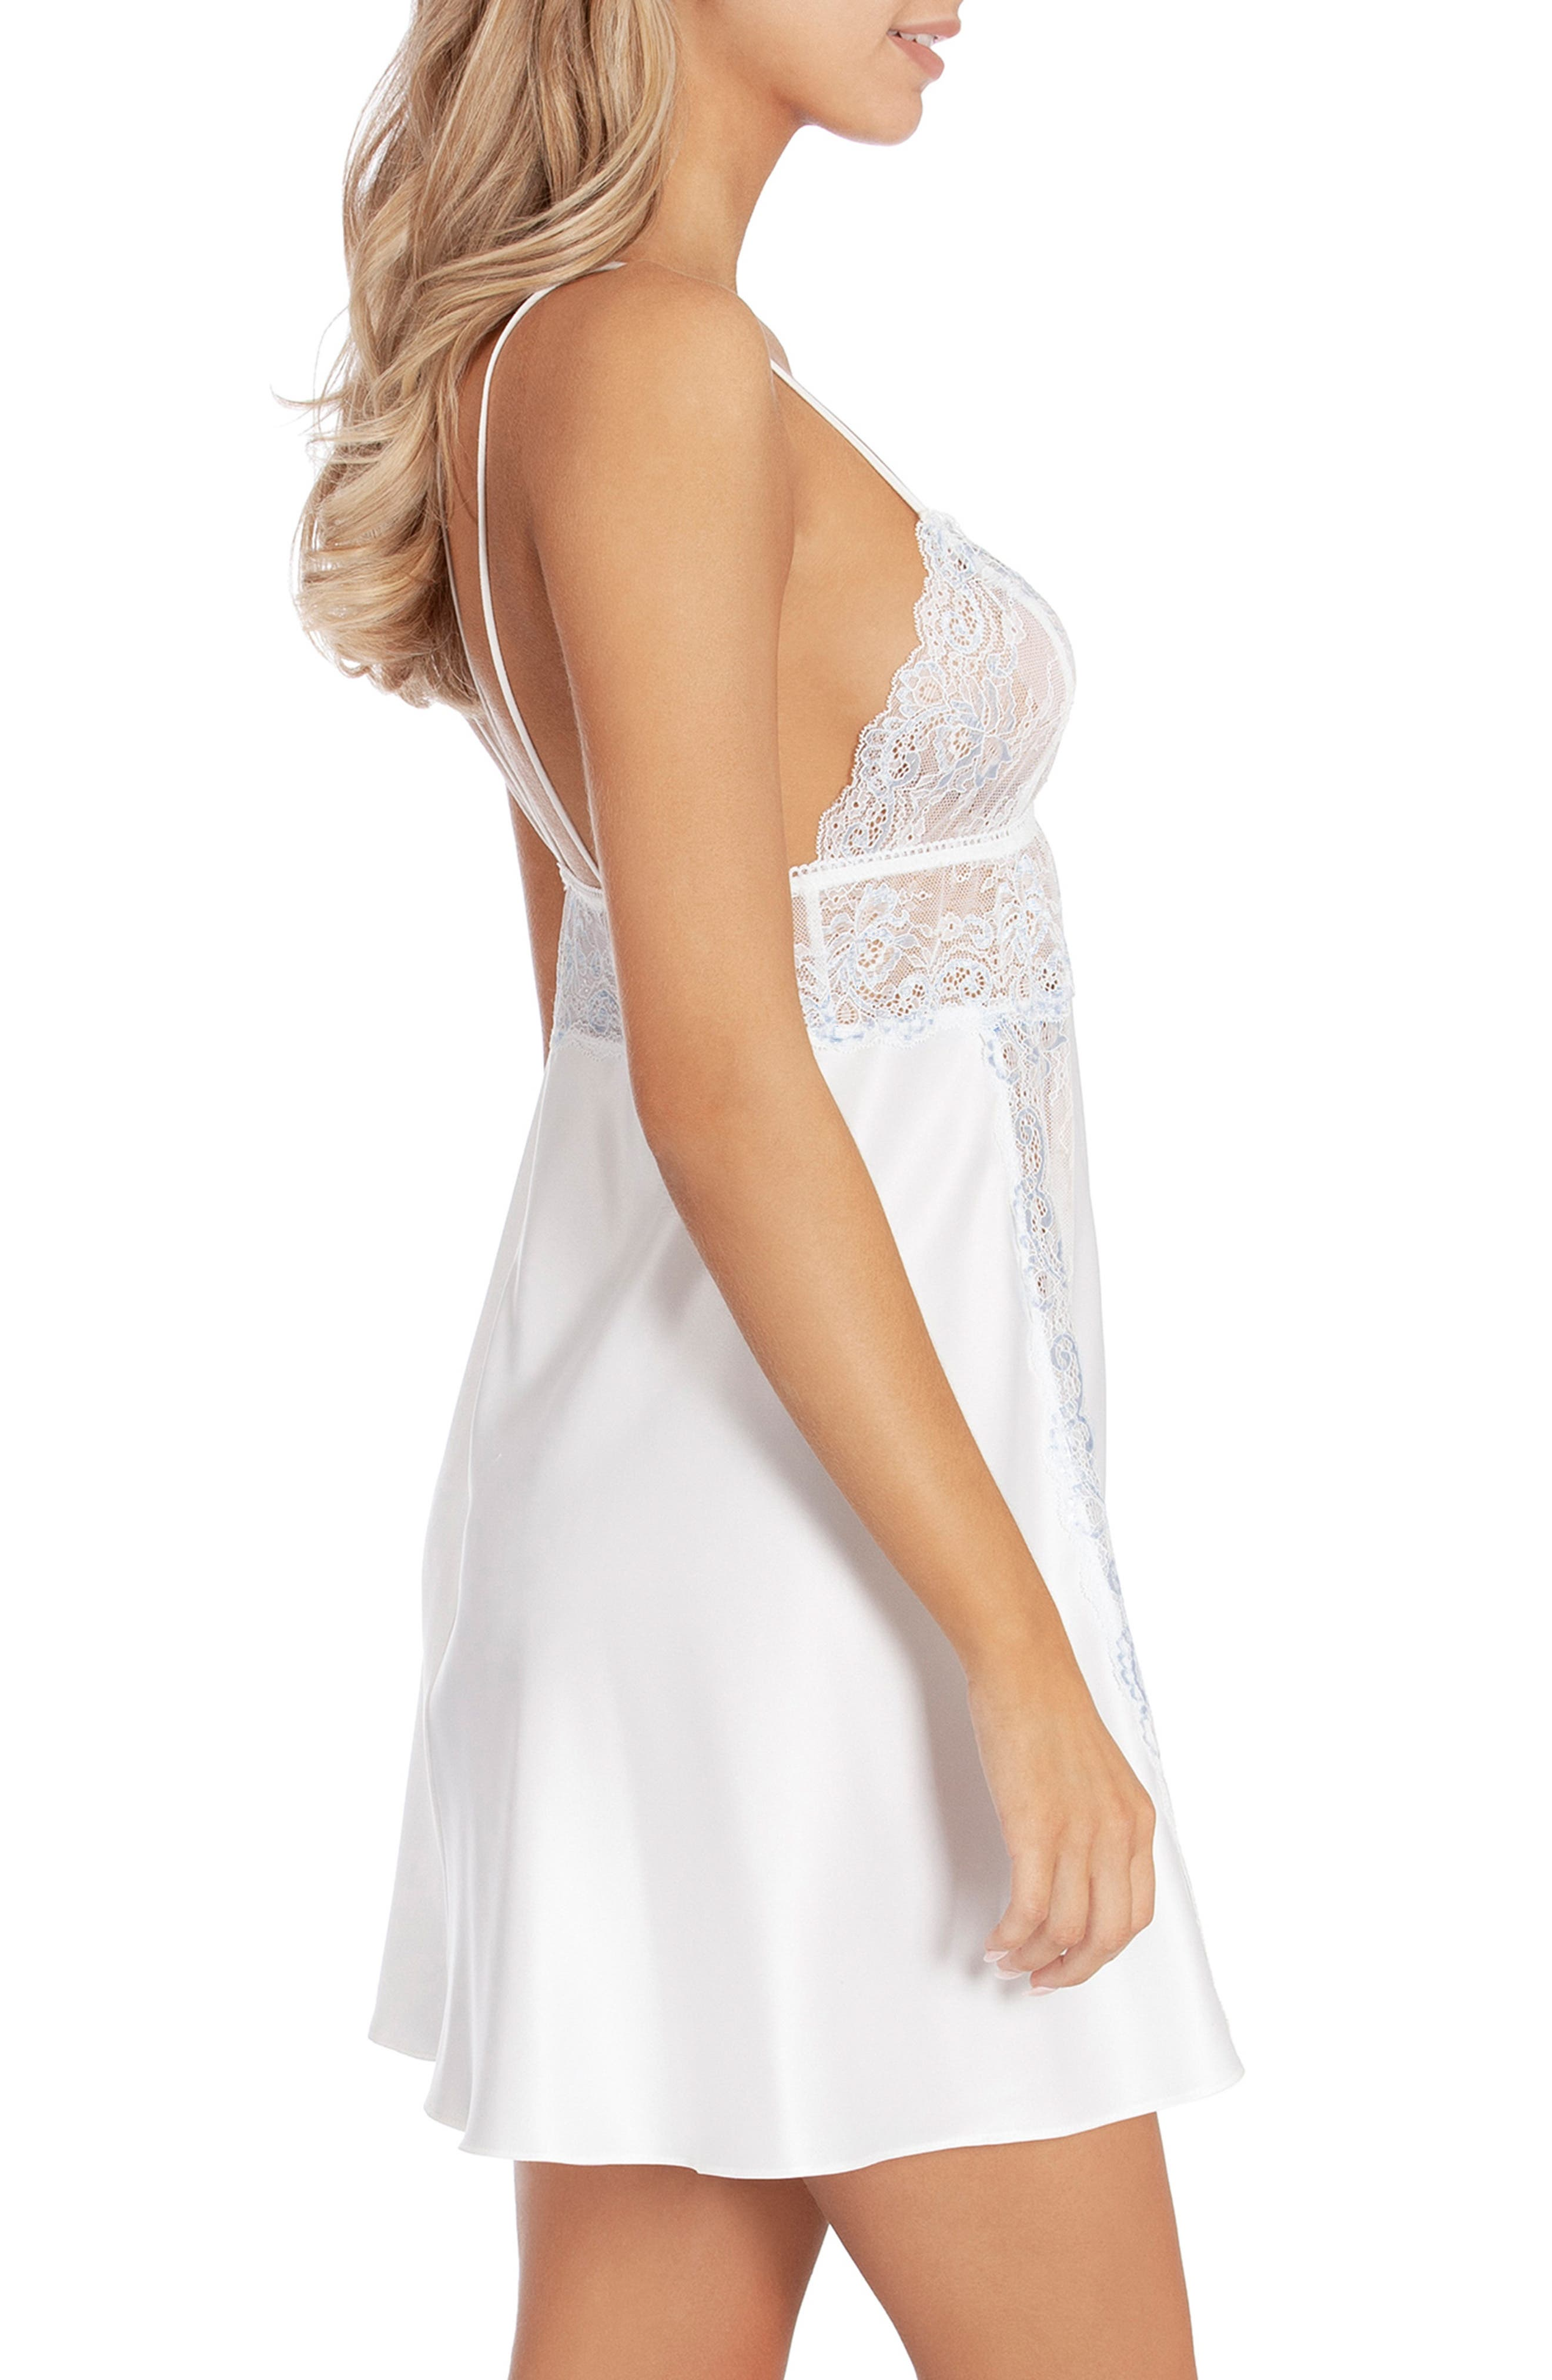 IN BLOOM BY JONQUIL,                             Lace & Satin Chemise,                             Alternate thumbnail 3, color,                             OFF-WHITE